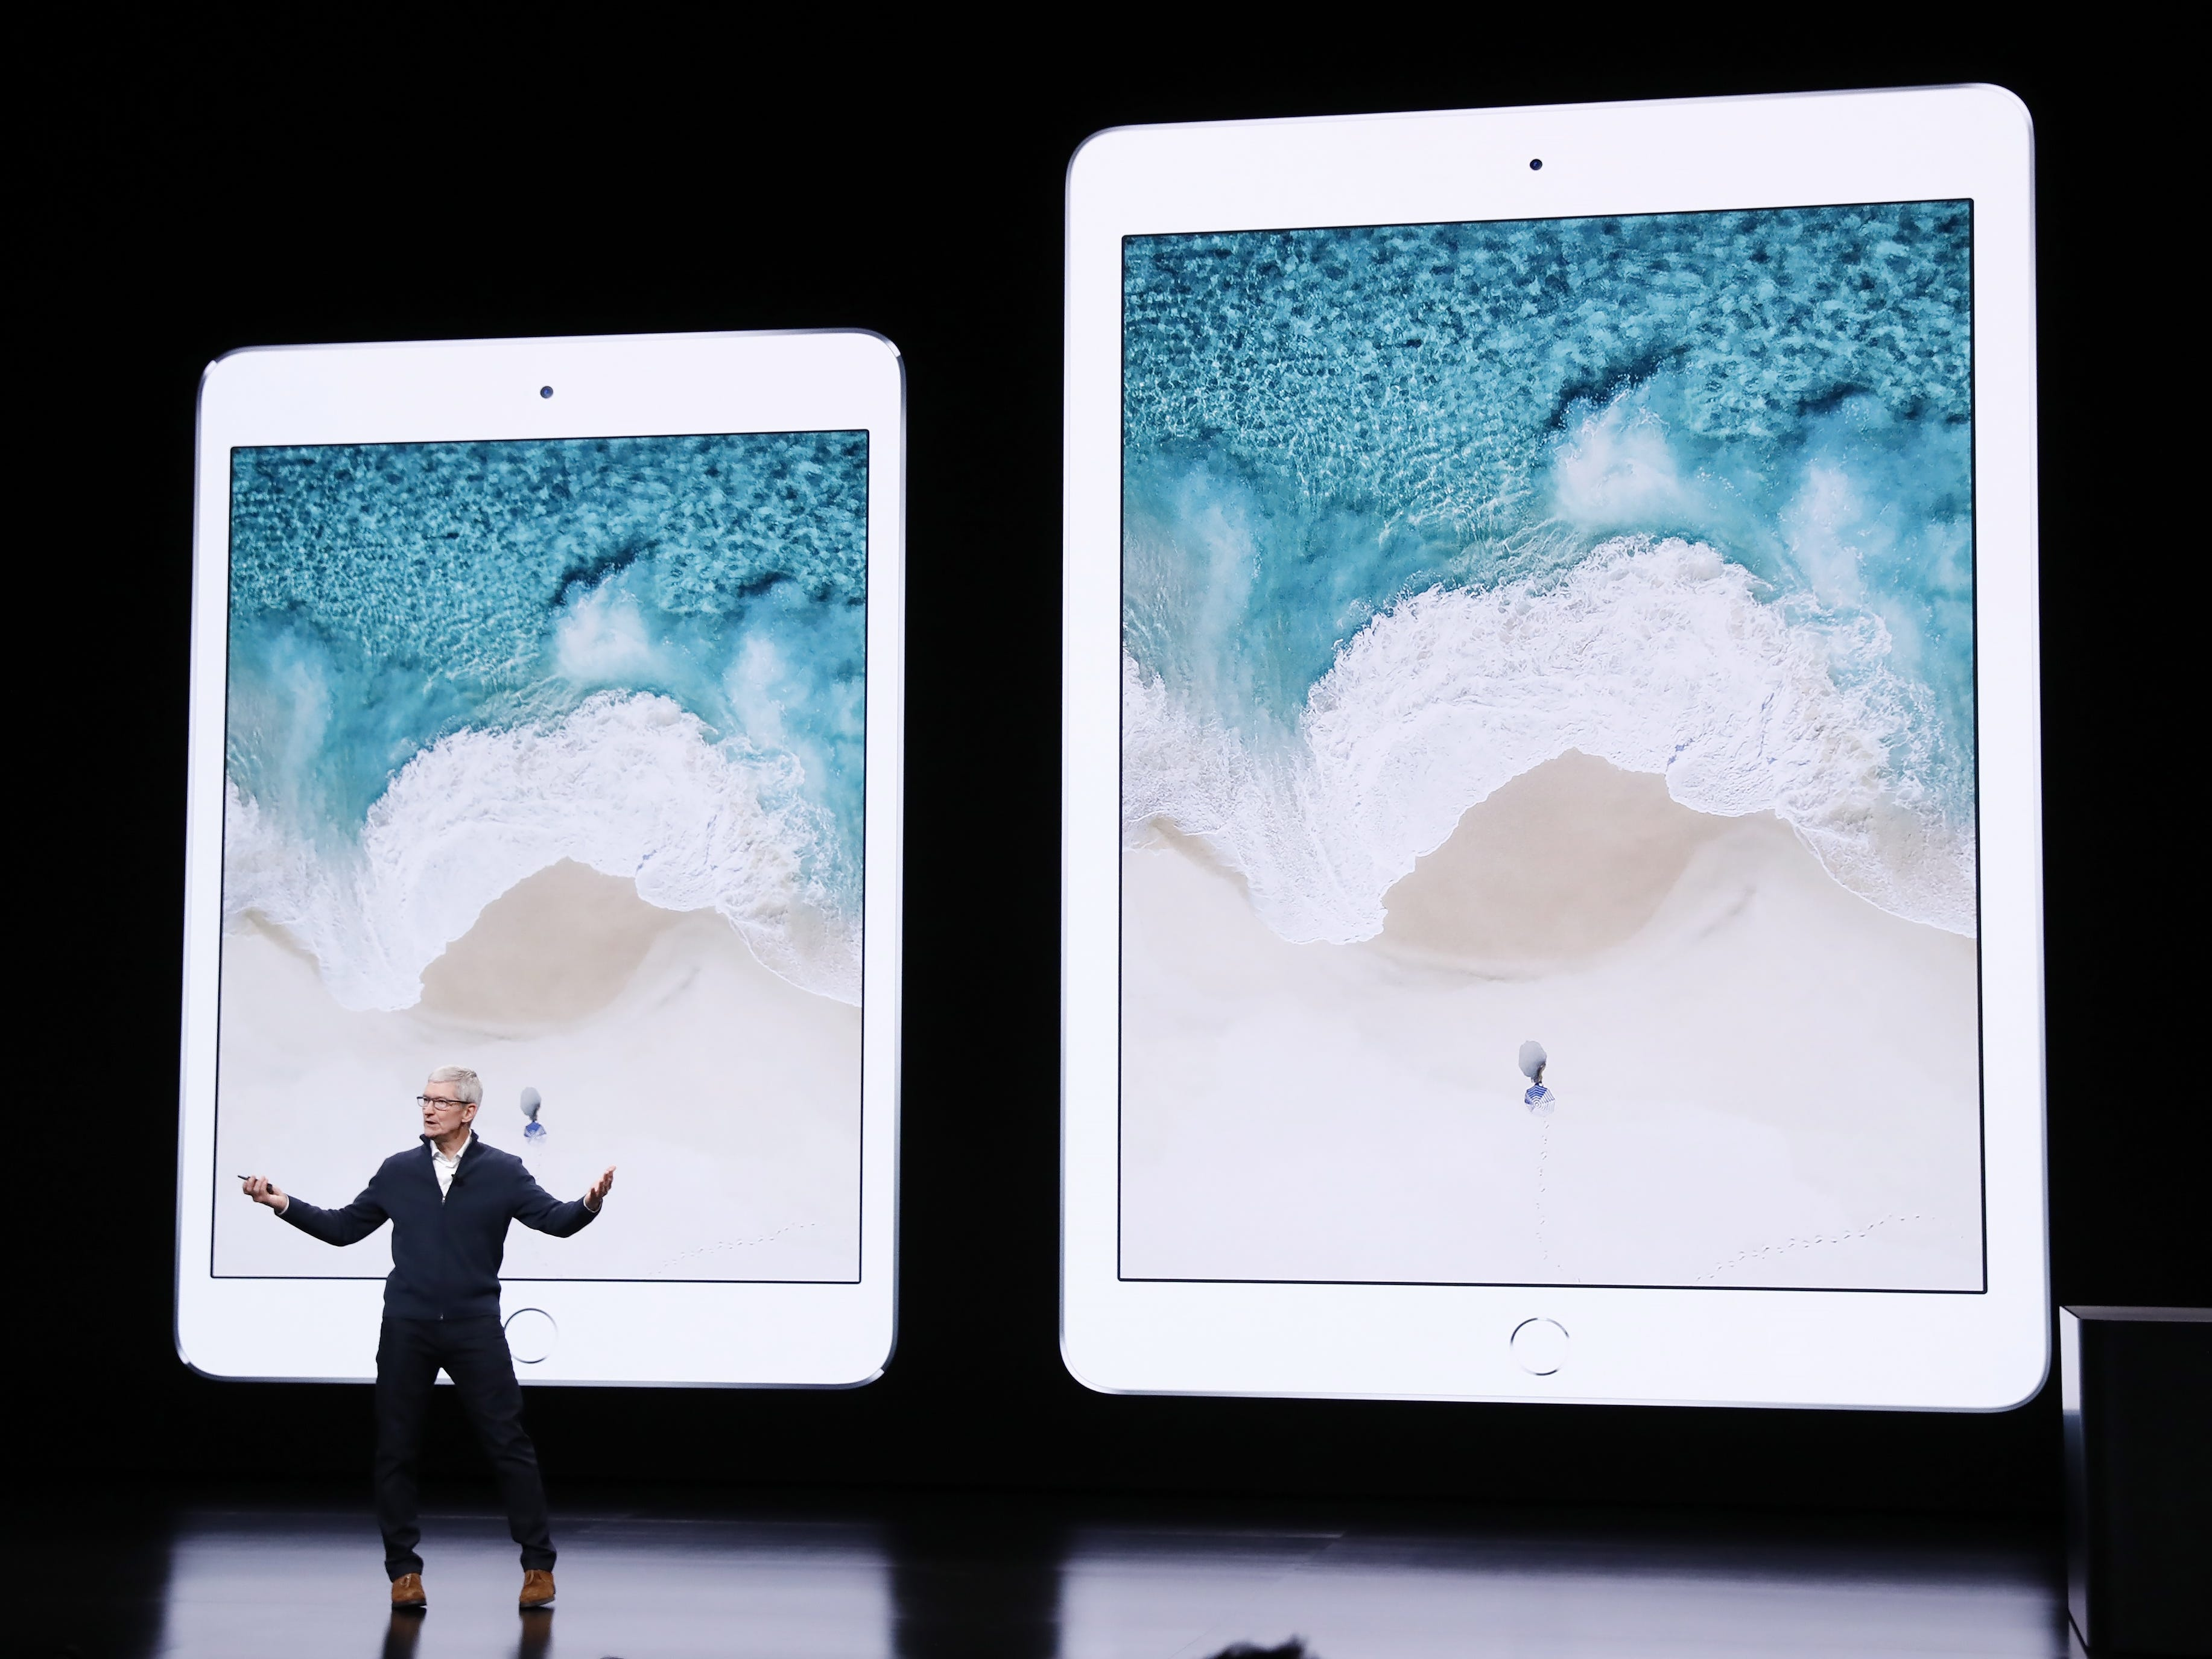 Apple CEO Tim Cook speaks about the iPad during an Apple special event at the Howard Gilman Opera House at the Brooklyn Academy of Music before the start of an Apple event in New York, Tuesday, Oct. 30, 2018.